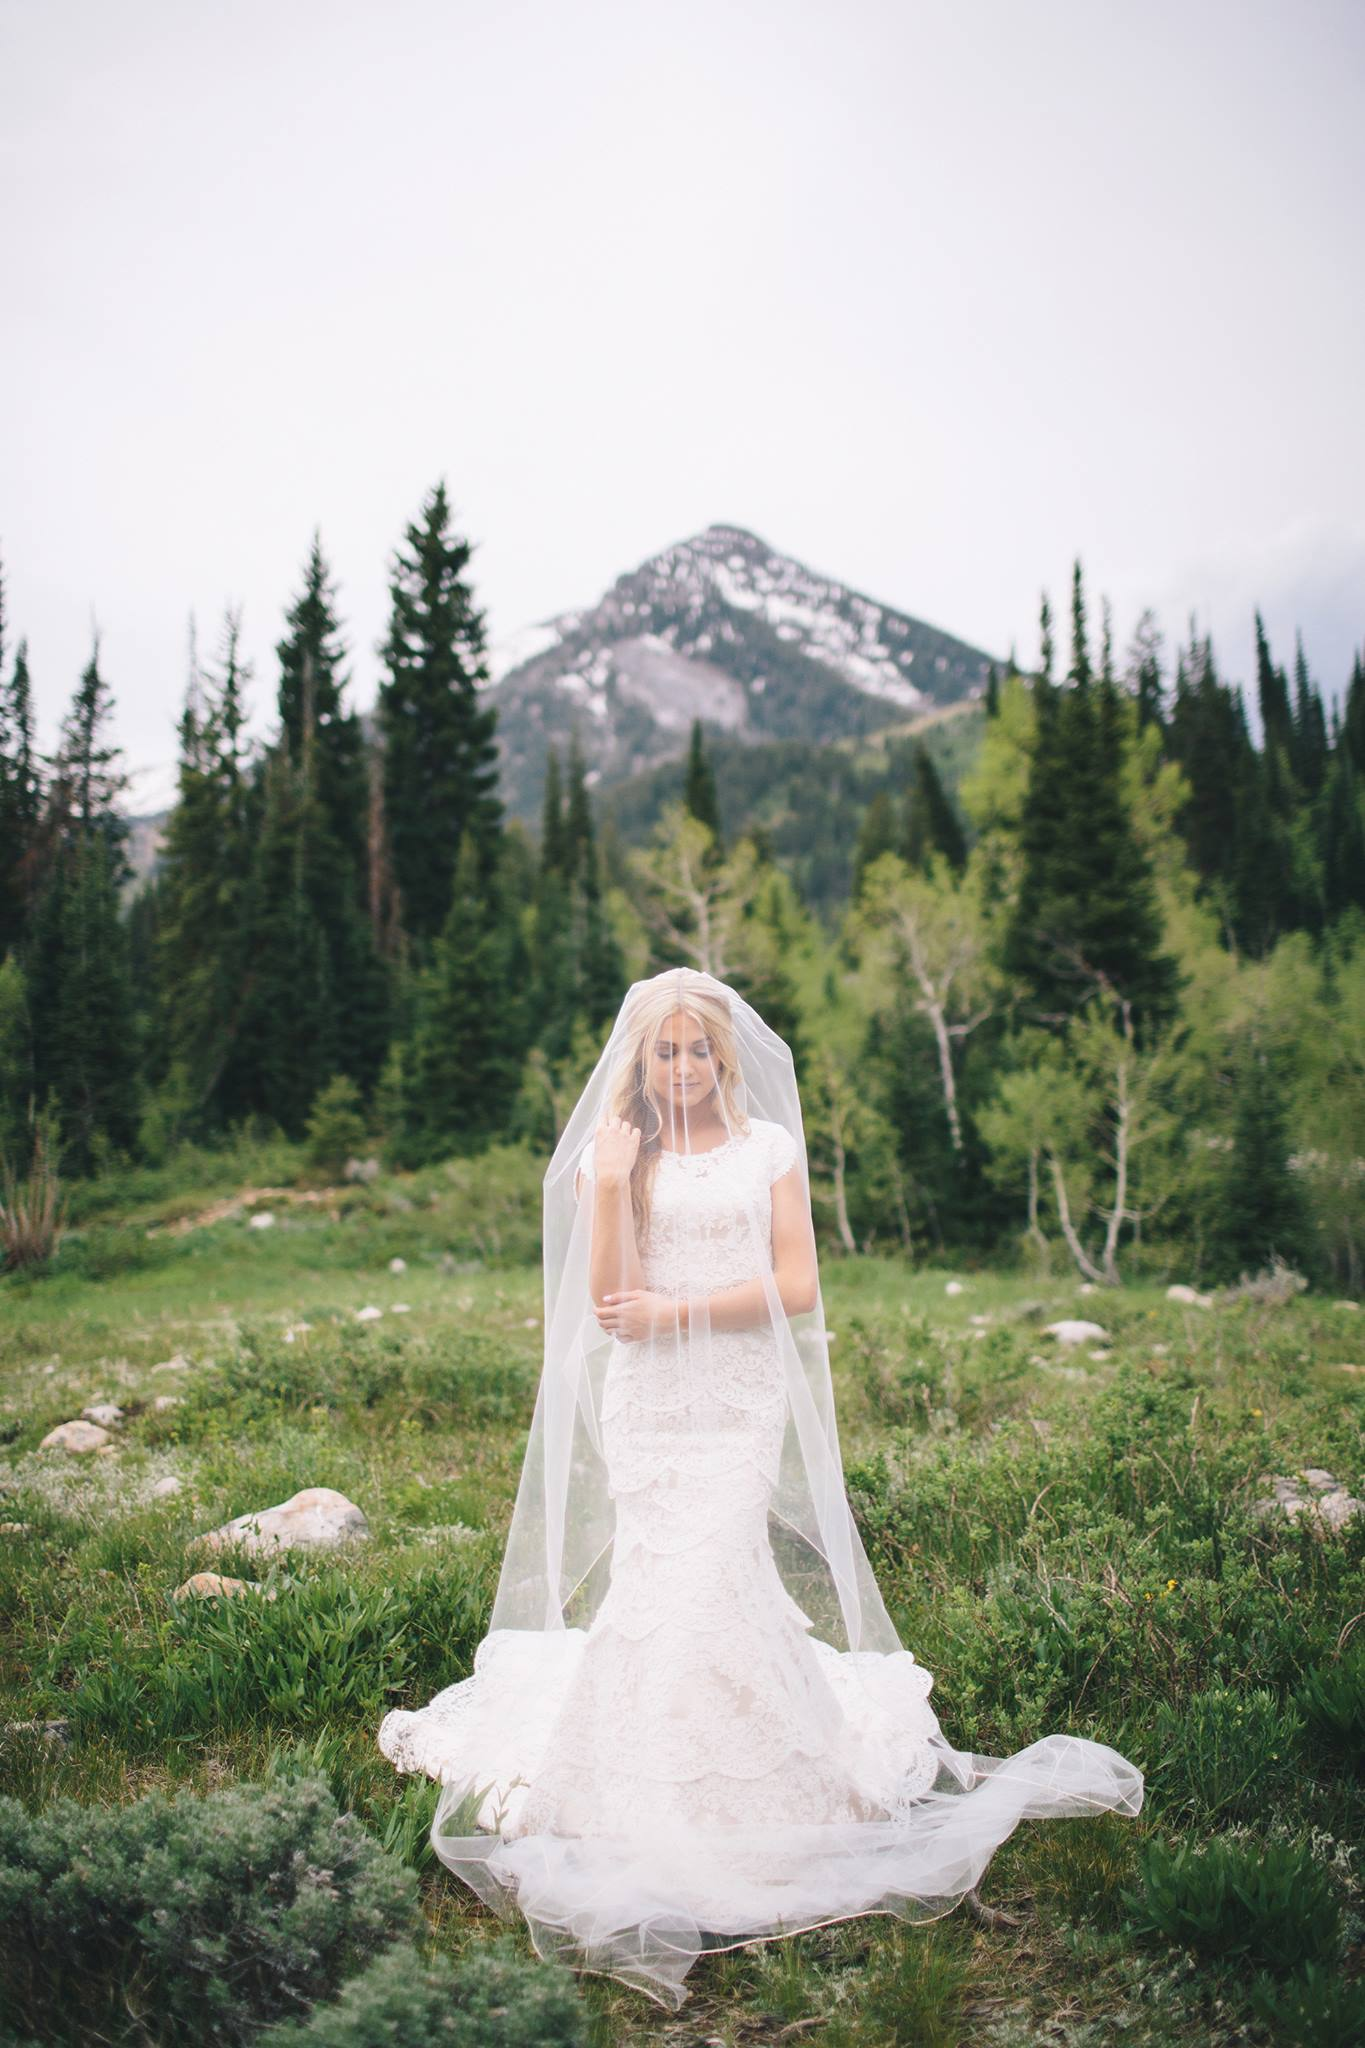 bride with veil covering her face standing in front of a mountain